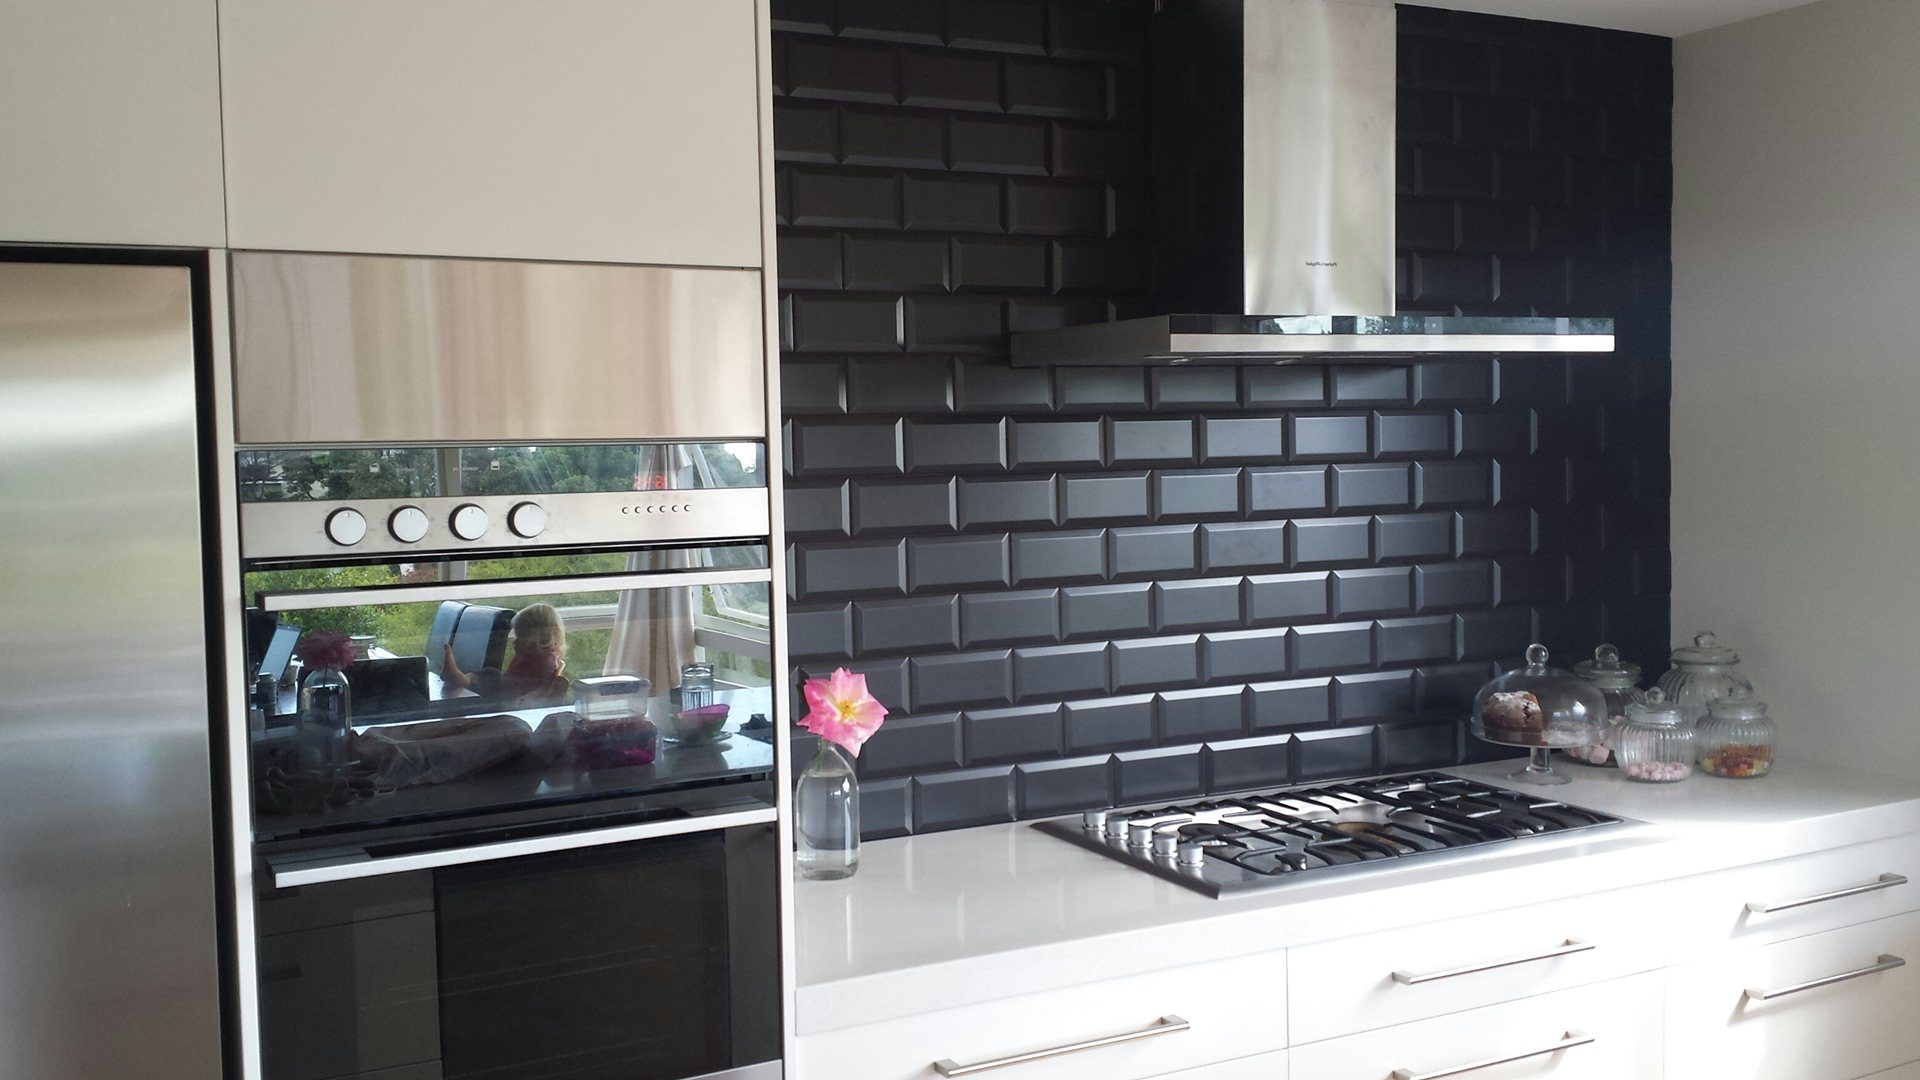 Bevelled Edge Tiles >> 10 Stylish Ways to Utilise Subway Tiles | Design Trends ...